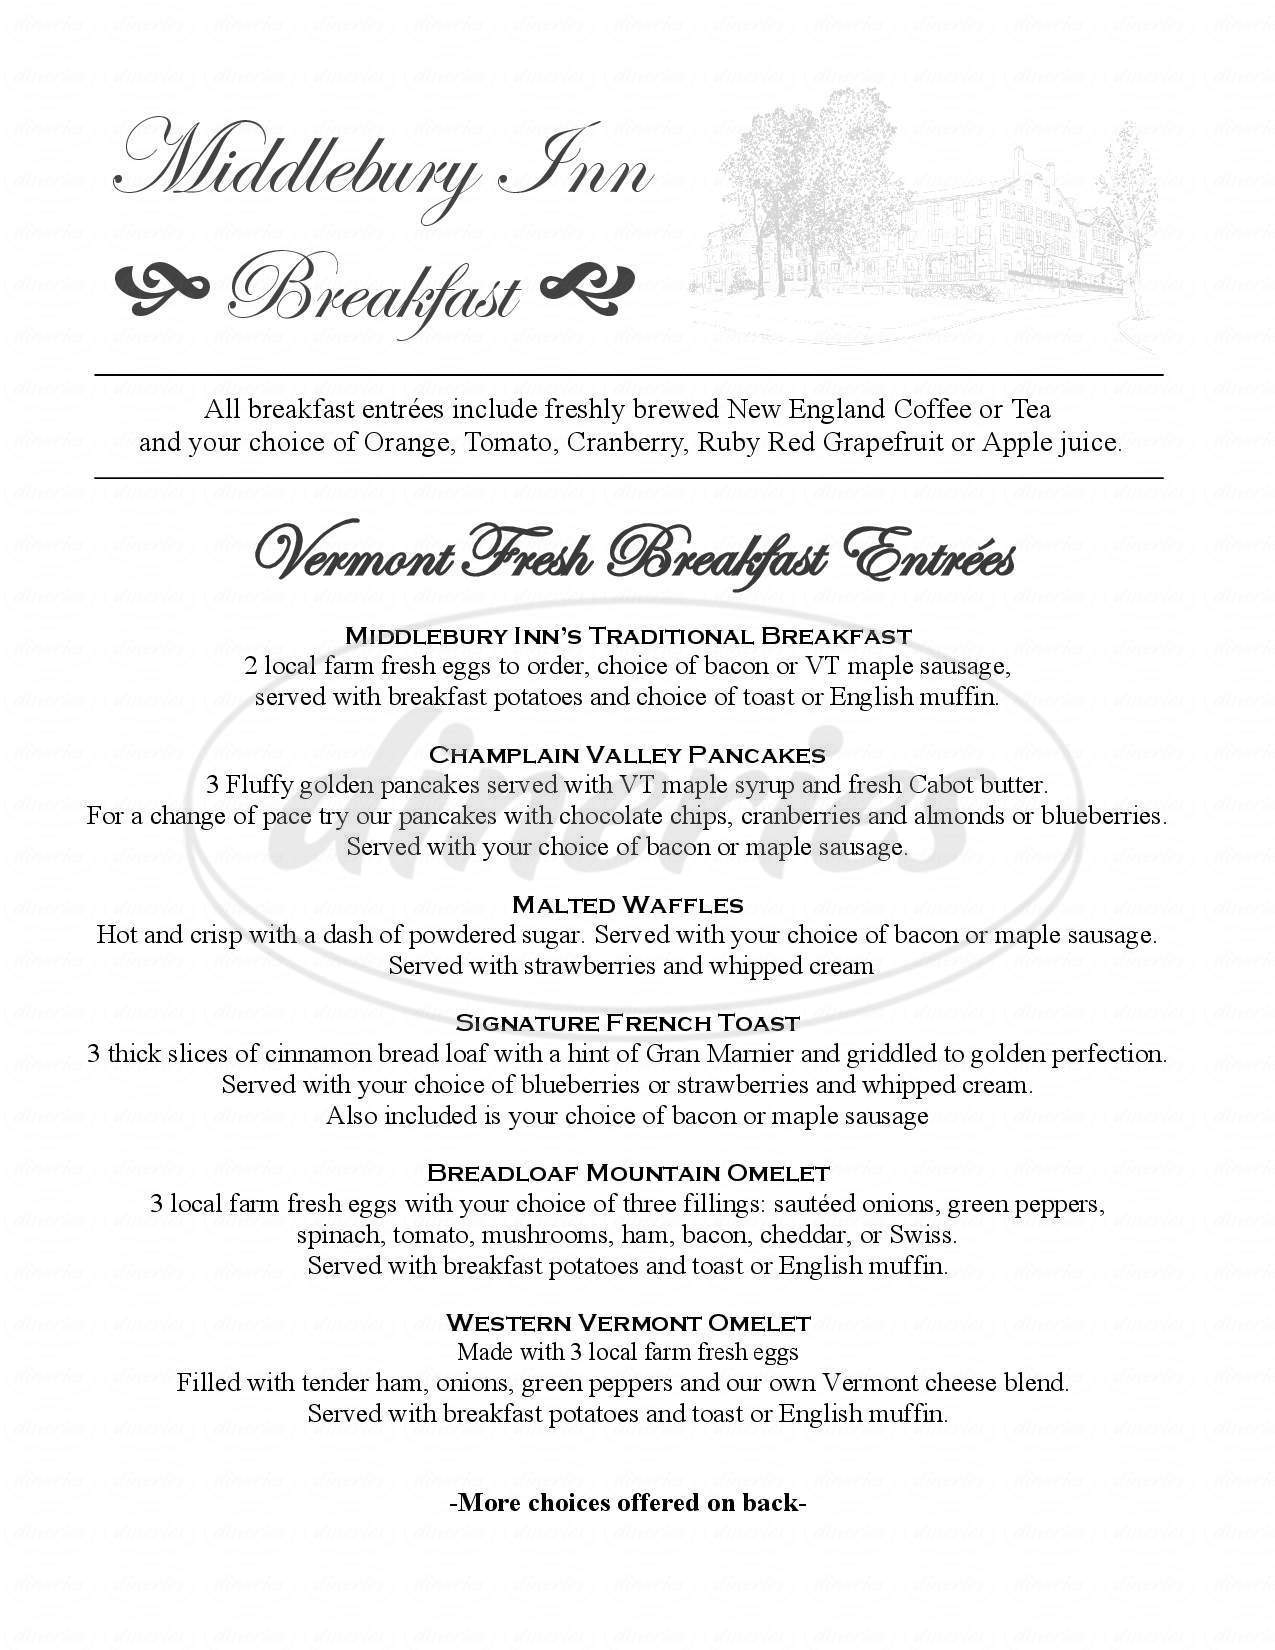 menu for Morgan's Tavern